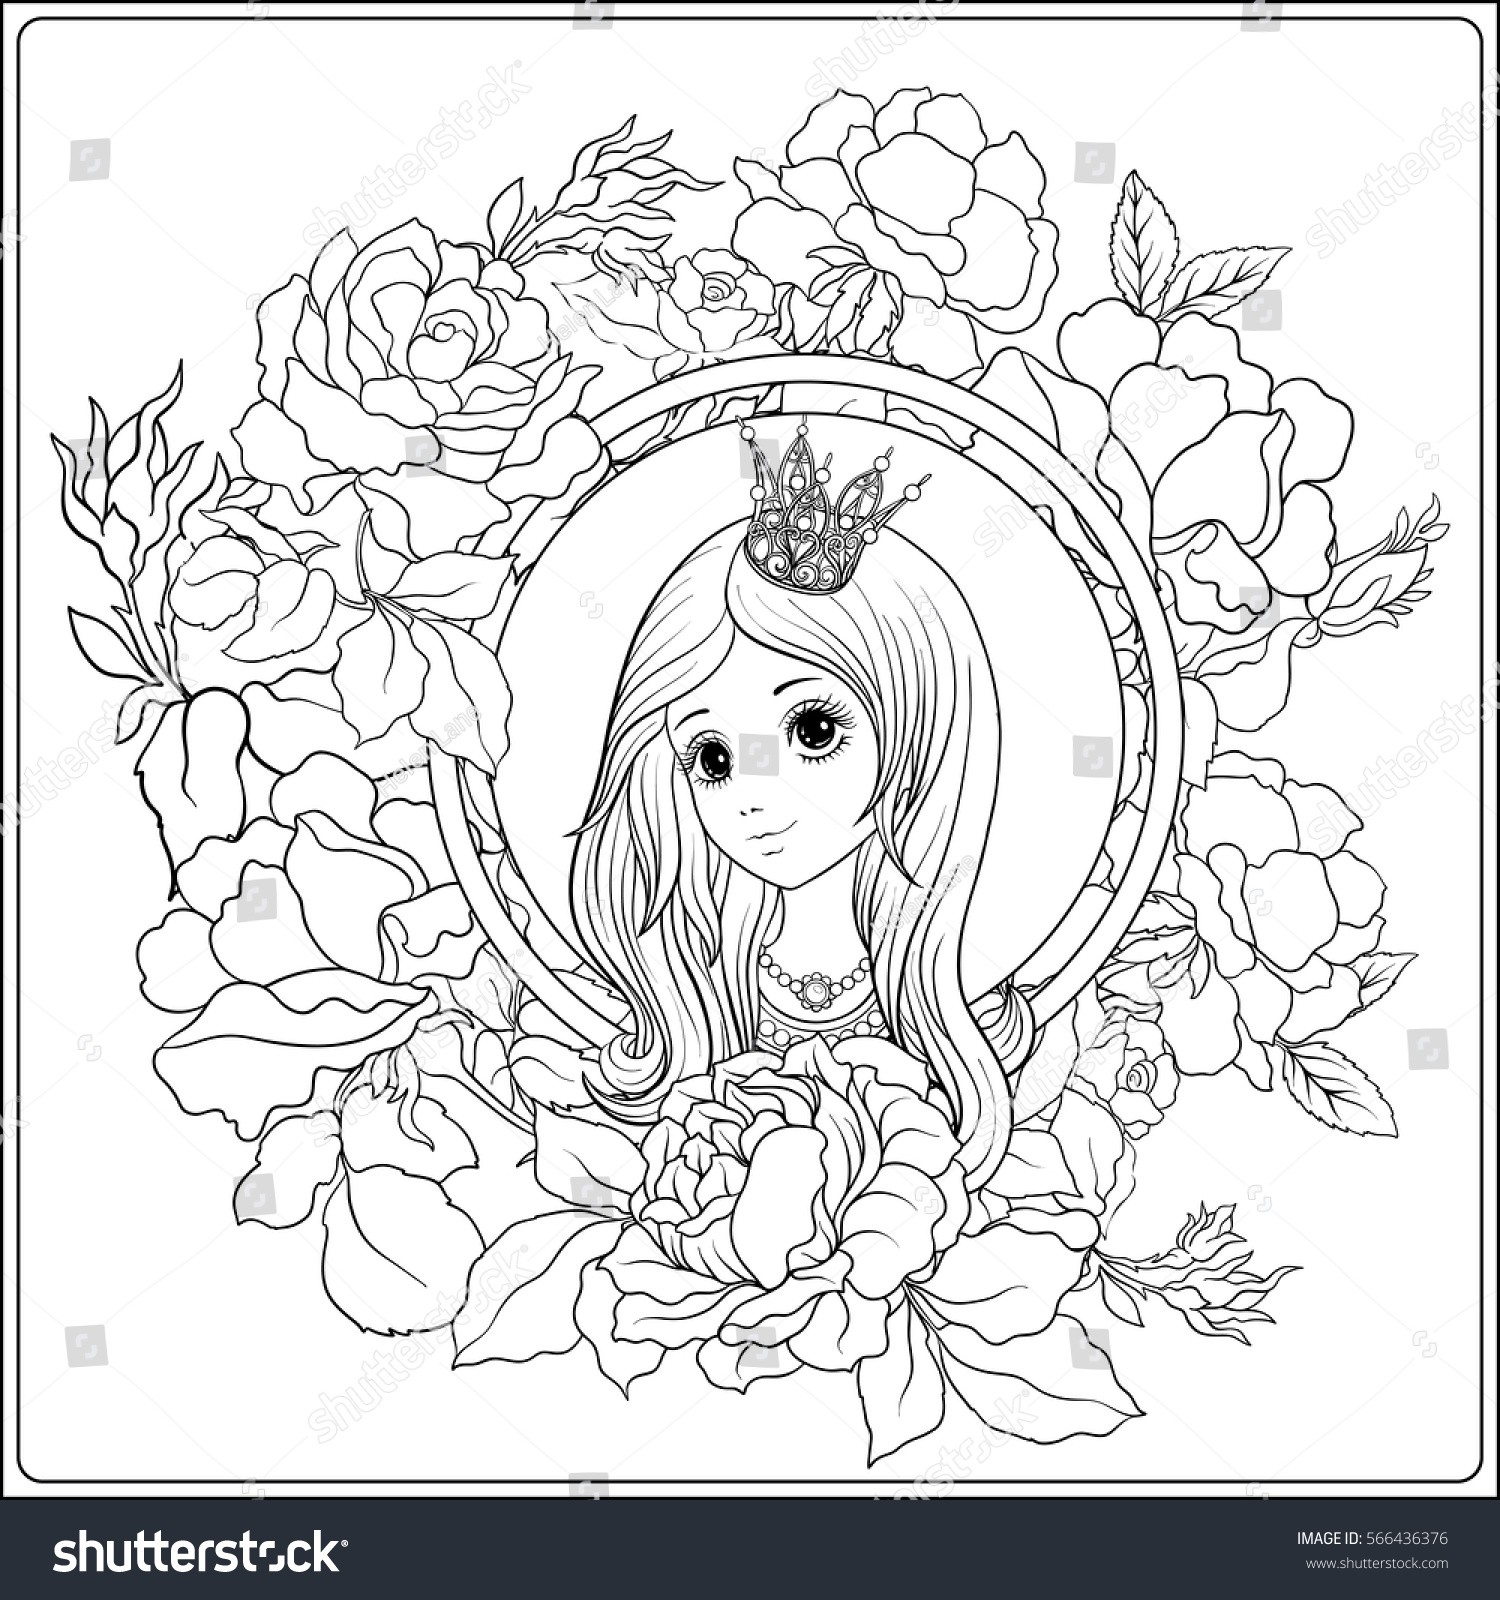 Crown Outline Drawing at GetDrawings.com | Free for personal use ...